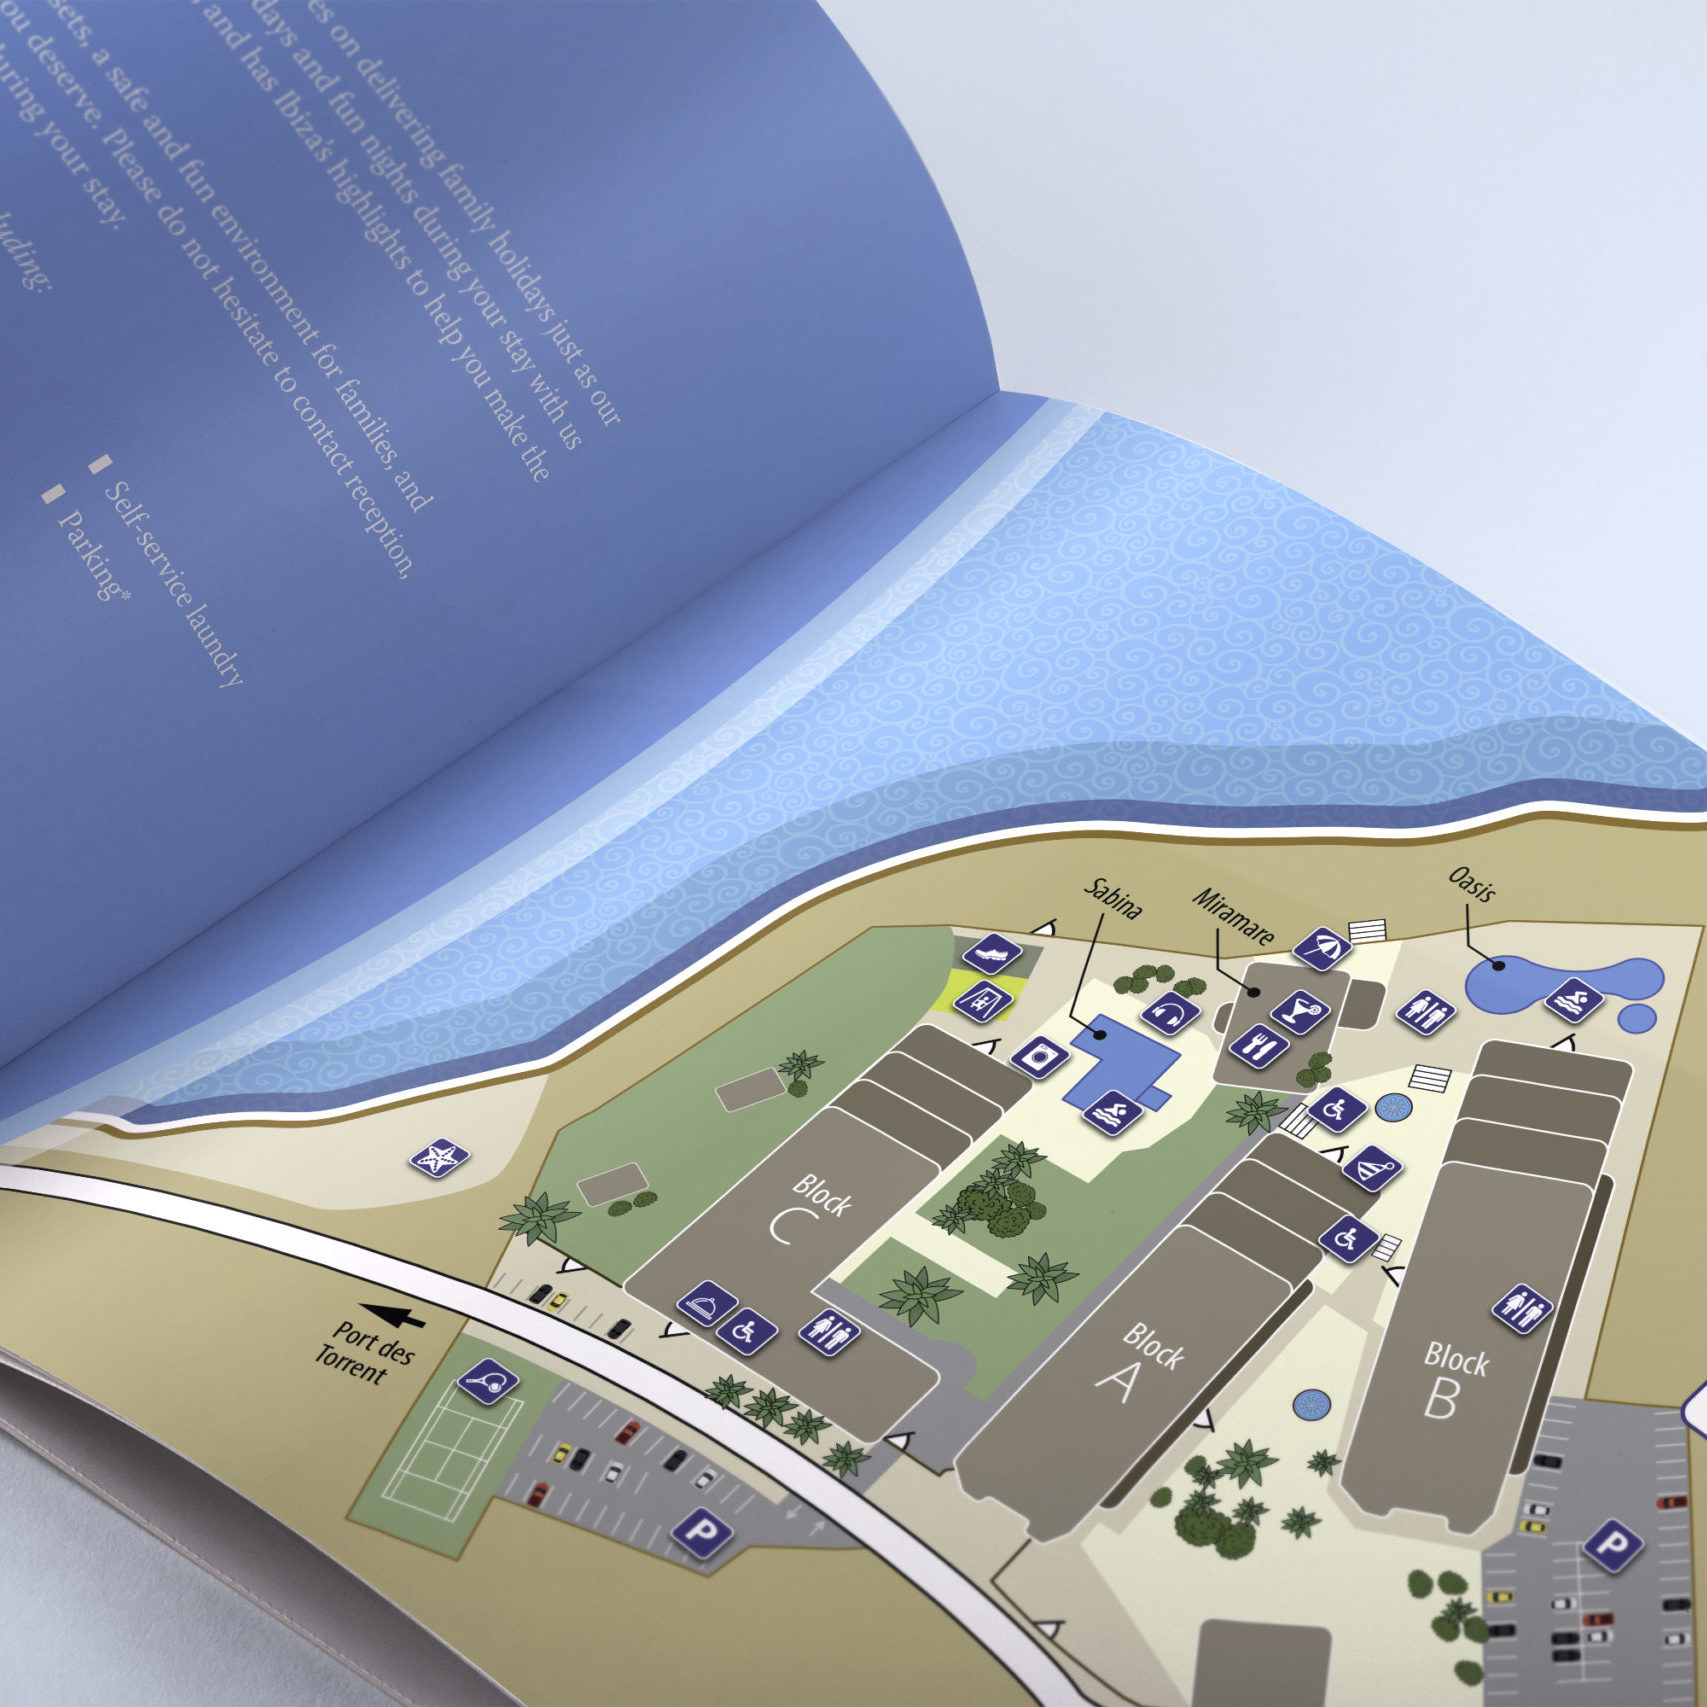 Hotel brochue design showing bespoke map, for Maia Communications